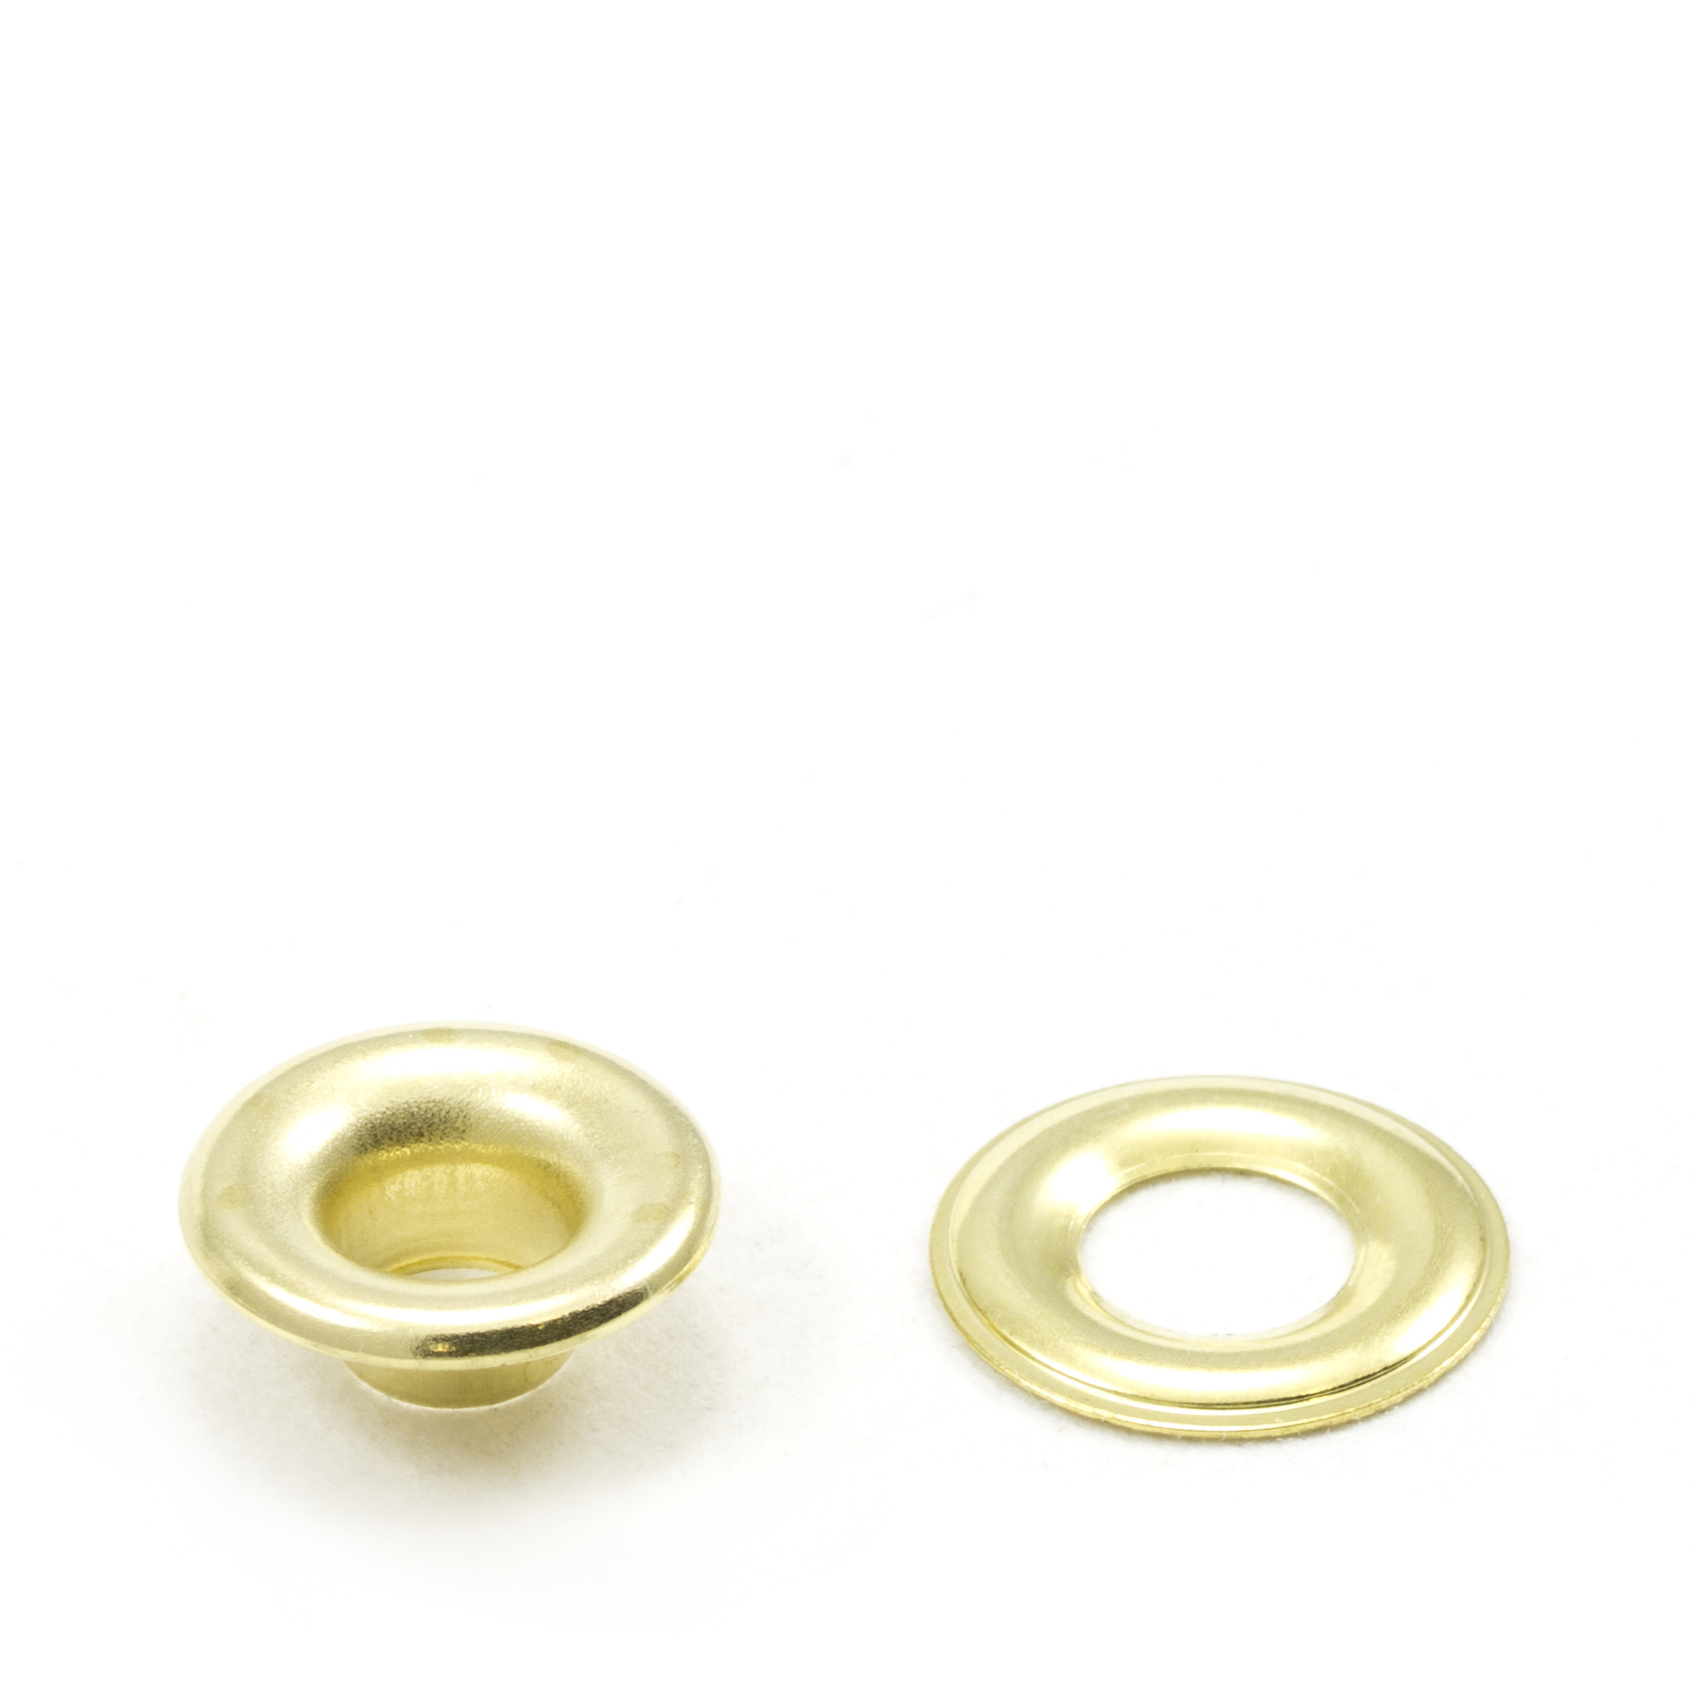 Thumbnail Grommet with Plain Washer #00 Brass 3/16 1